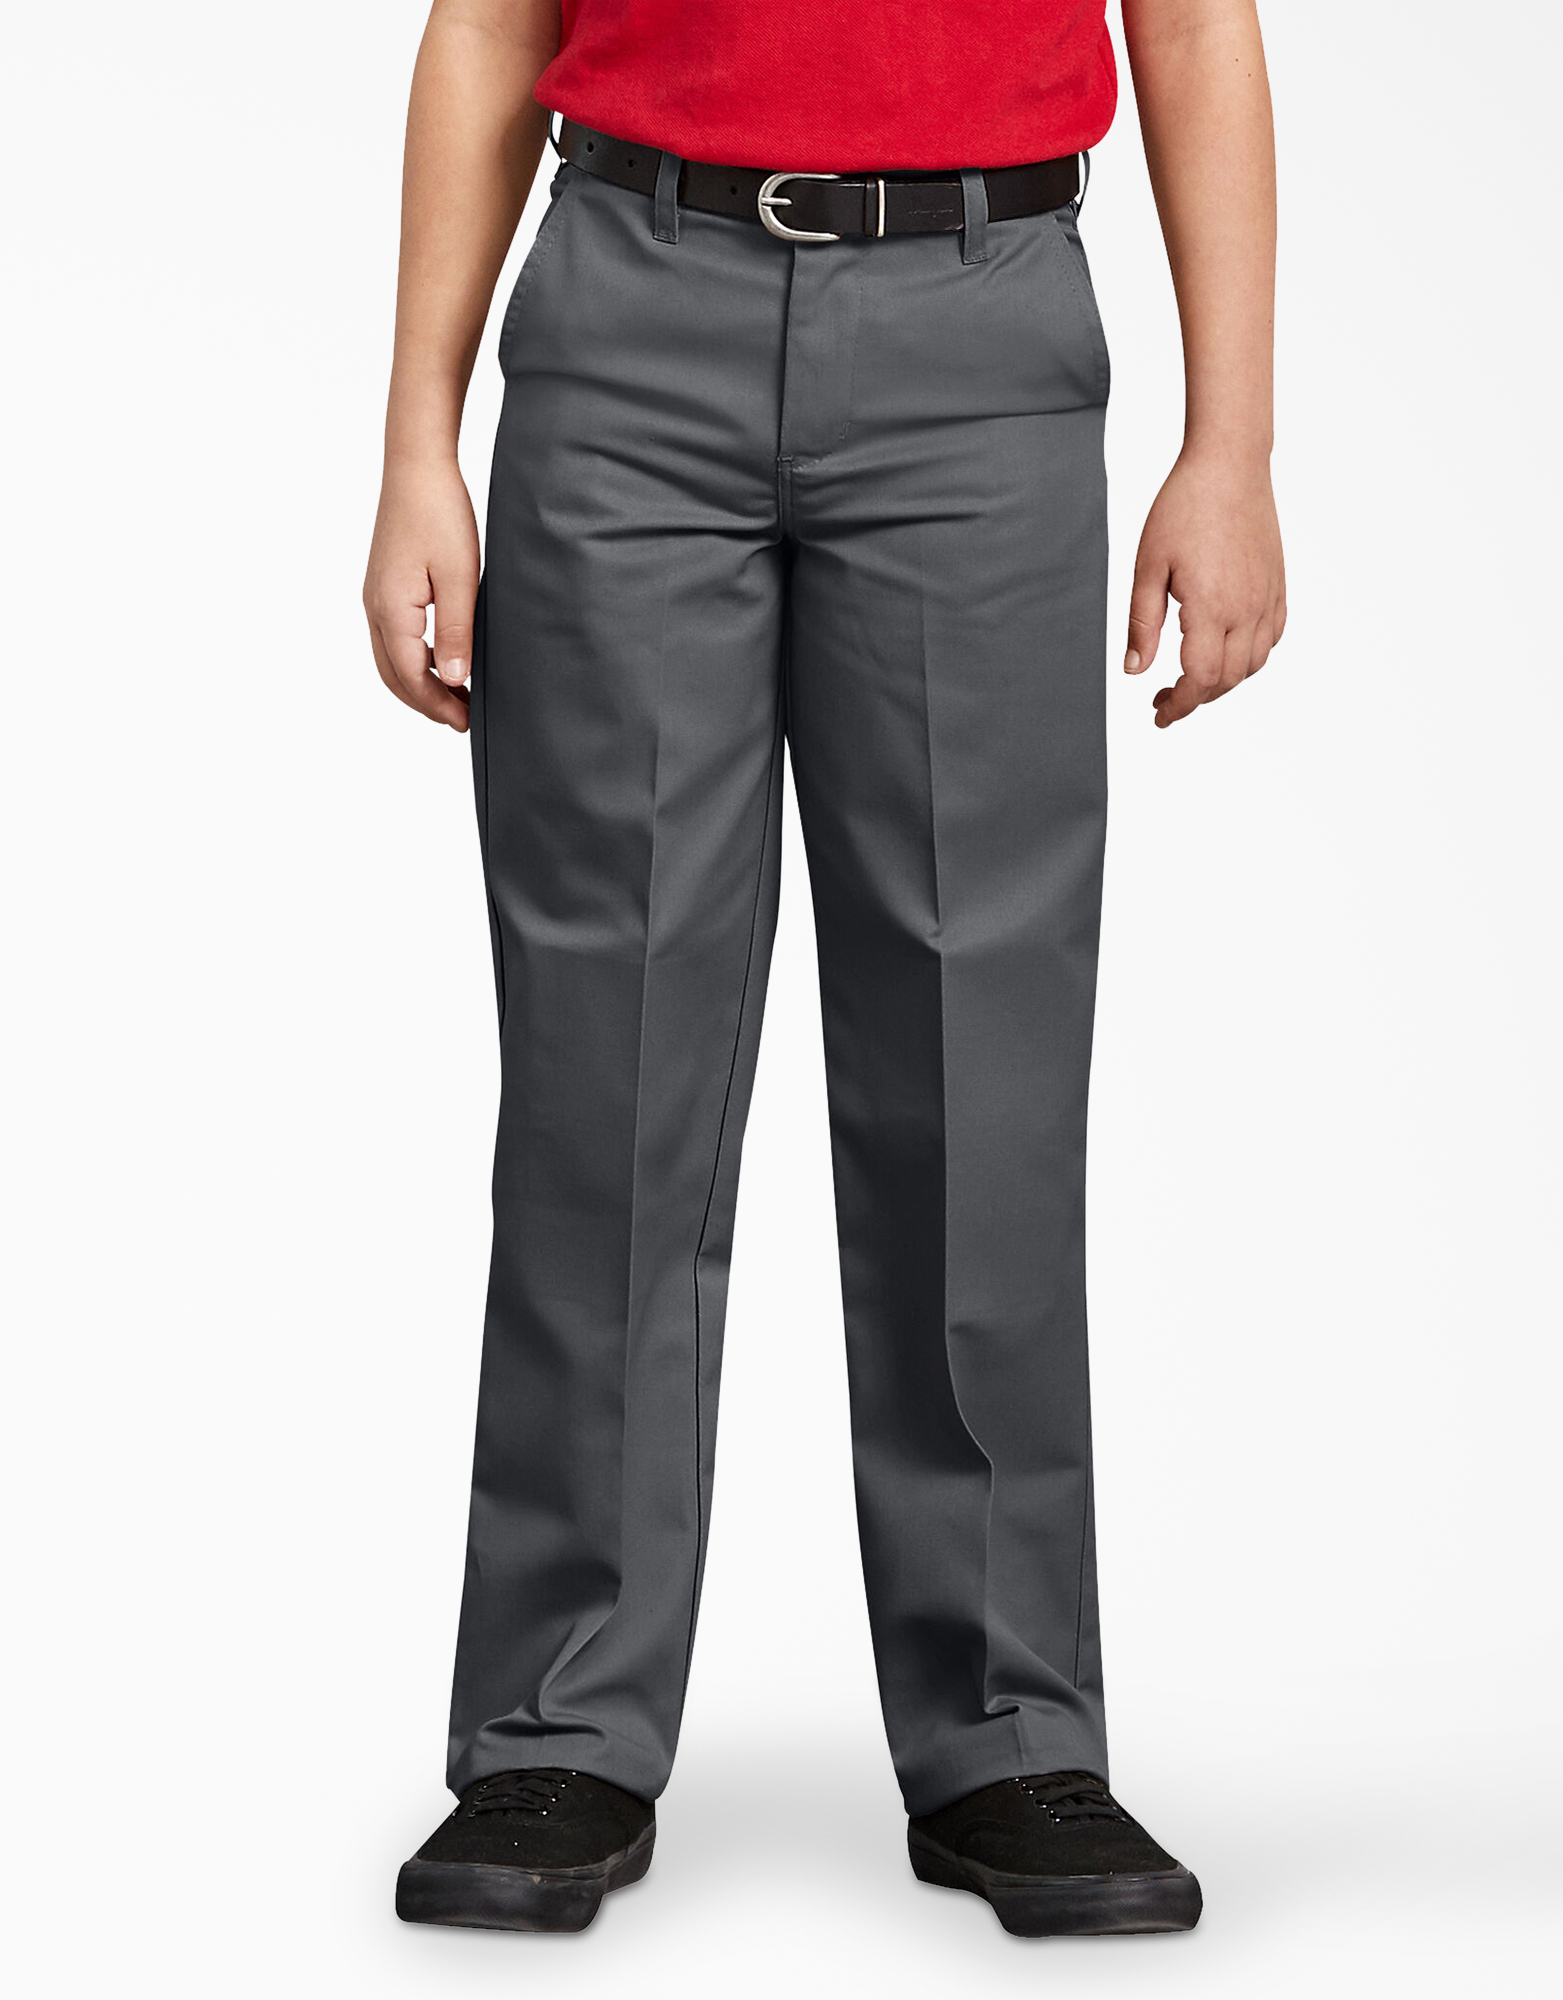 Boys' Classic Fit Straight Leg Flat Front Pants, 8-20 Husky - Charcoal Gray (CH)